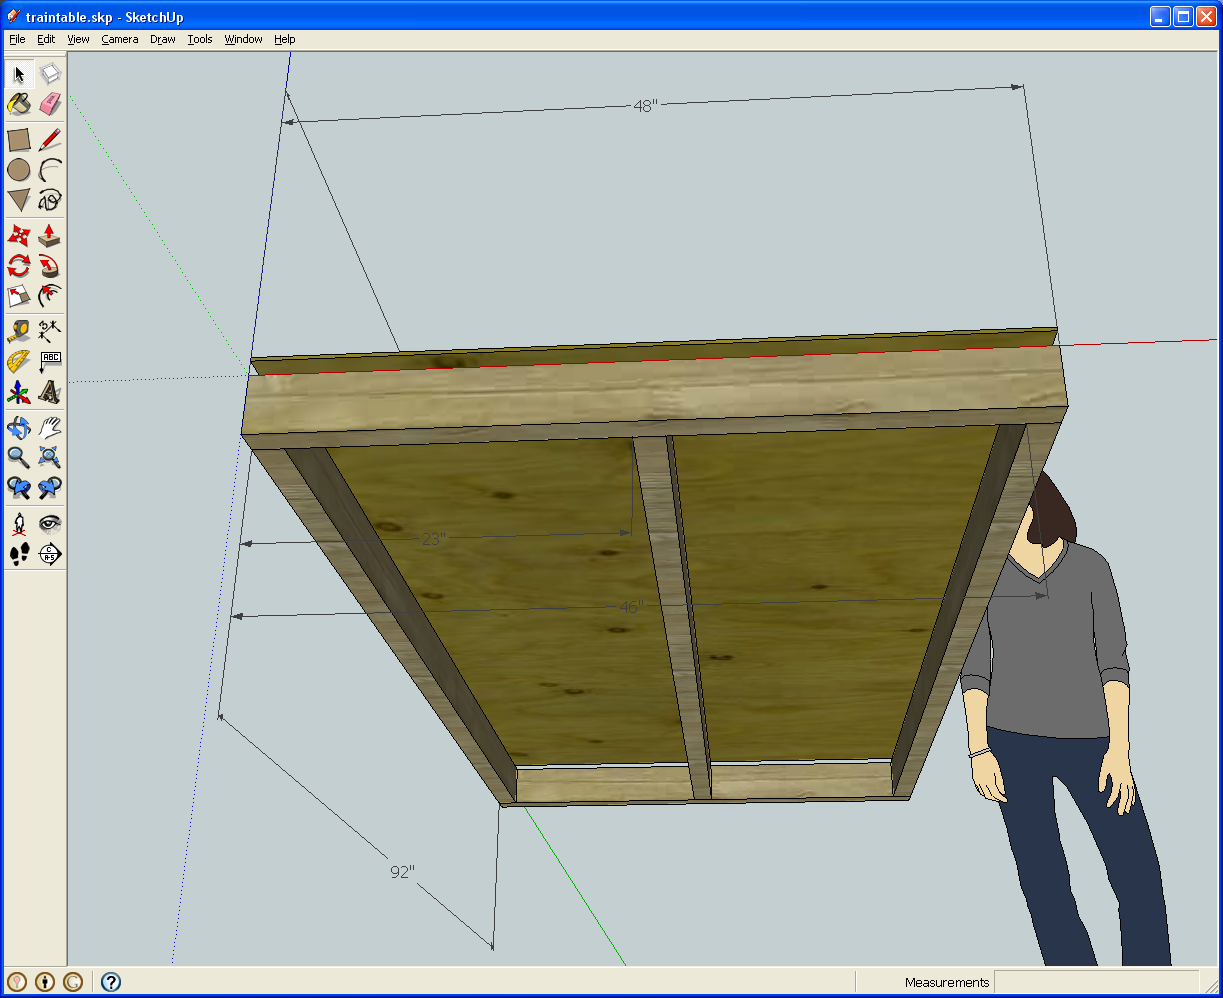 The sketchup'd model train table. - Adventures in Engineering